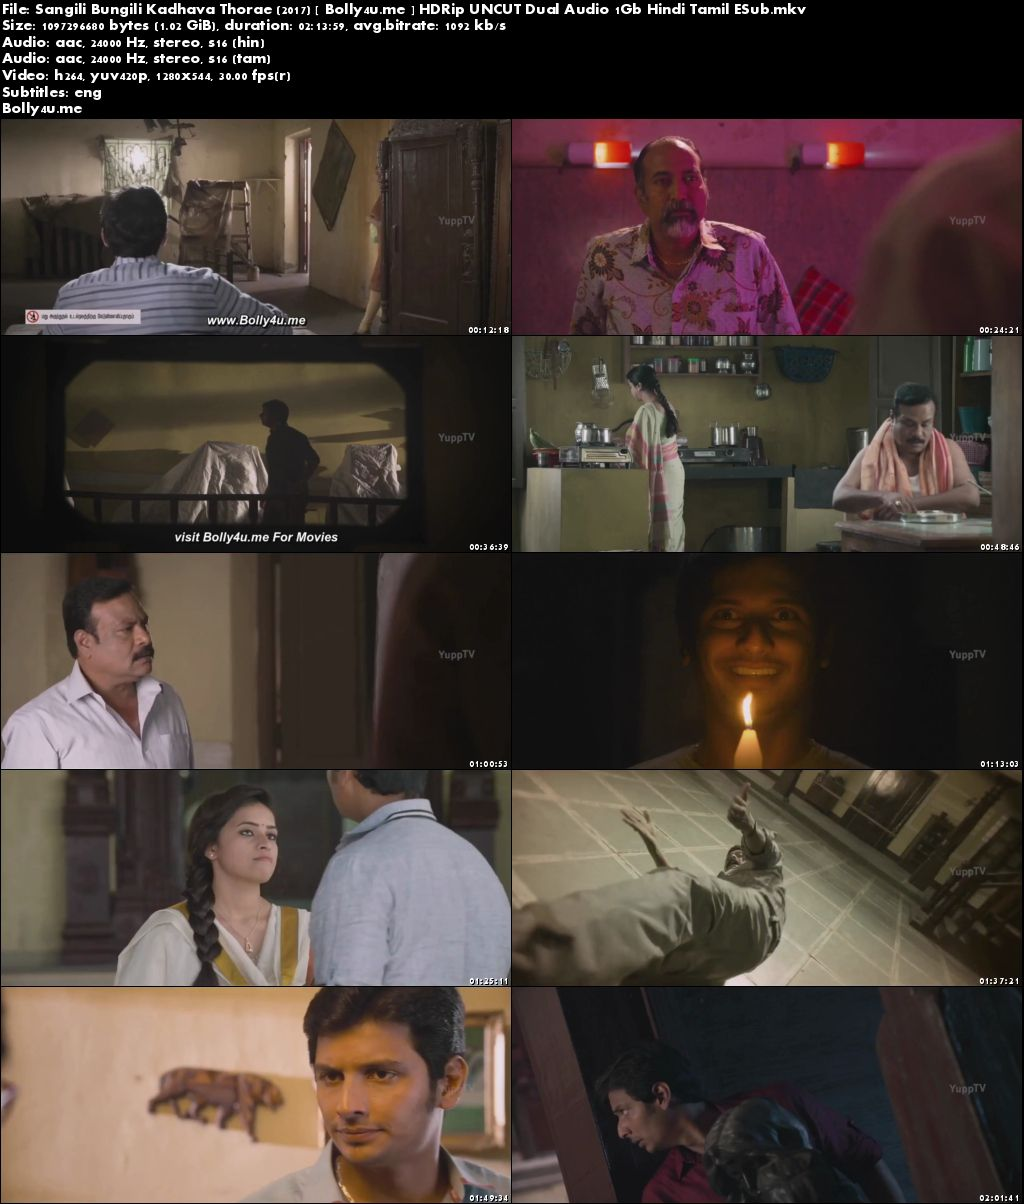 Sangili Bungili Kadhava Thorae 2017 HDRip 1GB UNCUT Dual Audio 720p Download